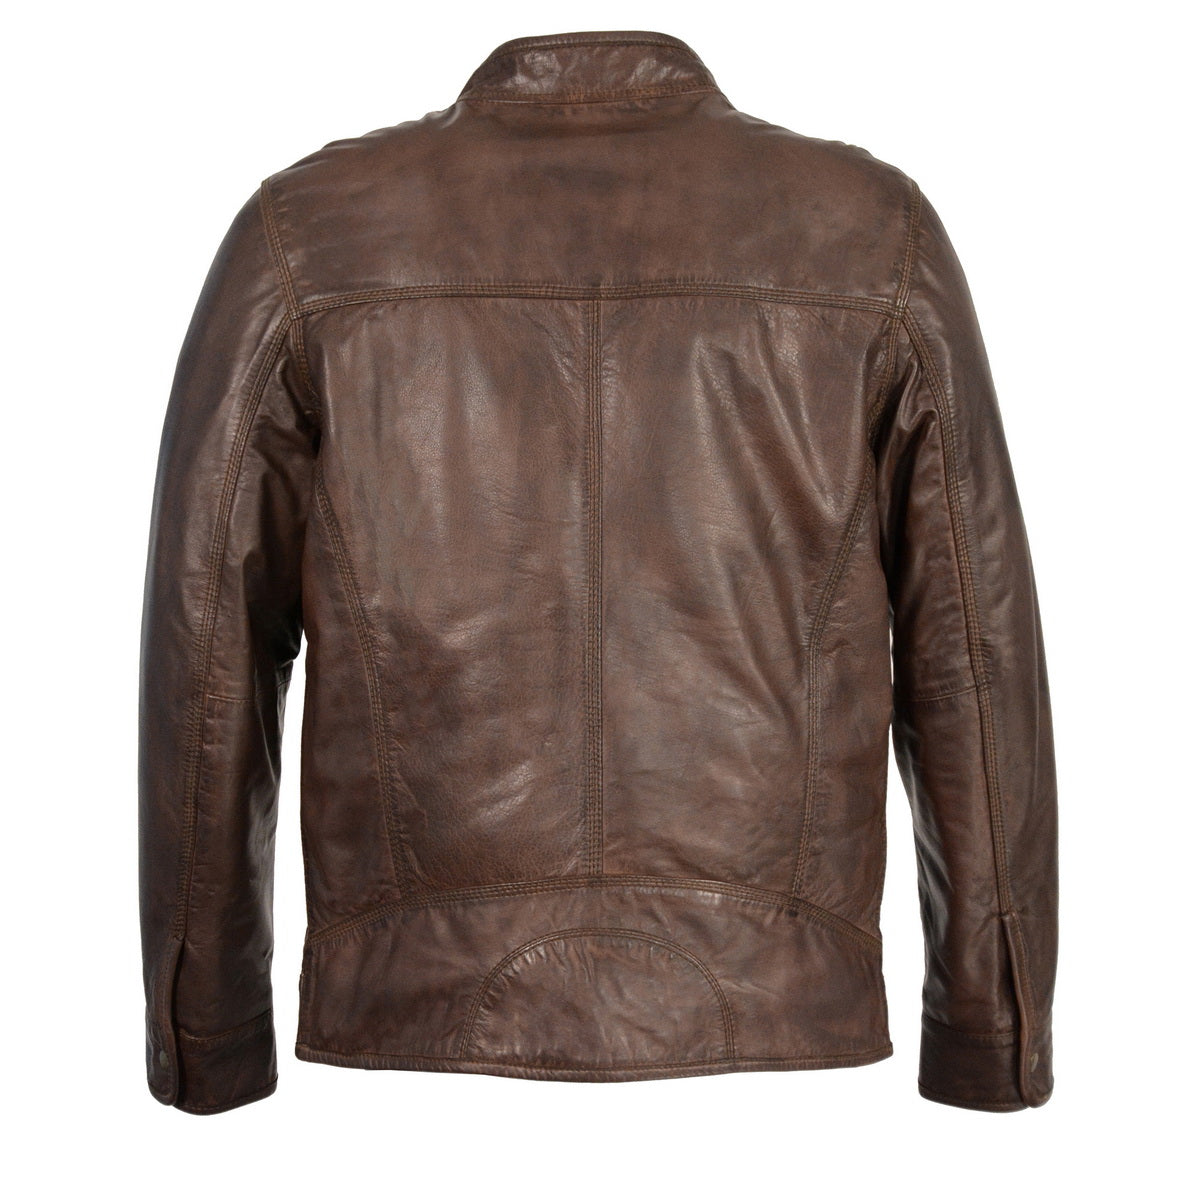 Milwaukee Leather SFM1865 Mens Broken Brown Leather Jacket with Front